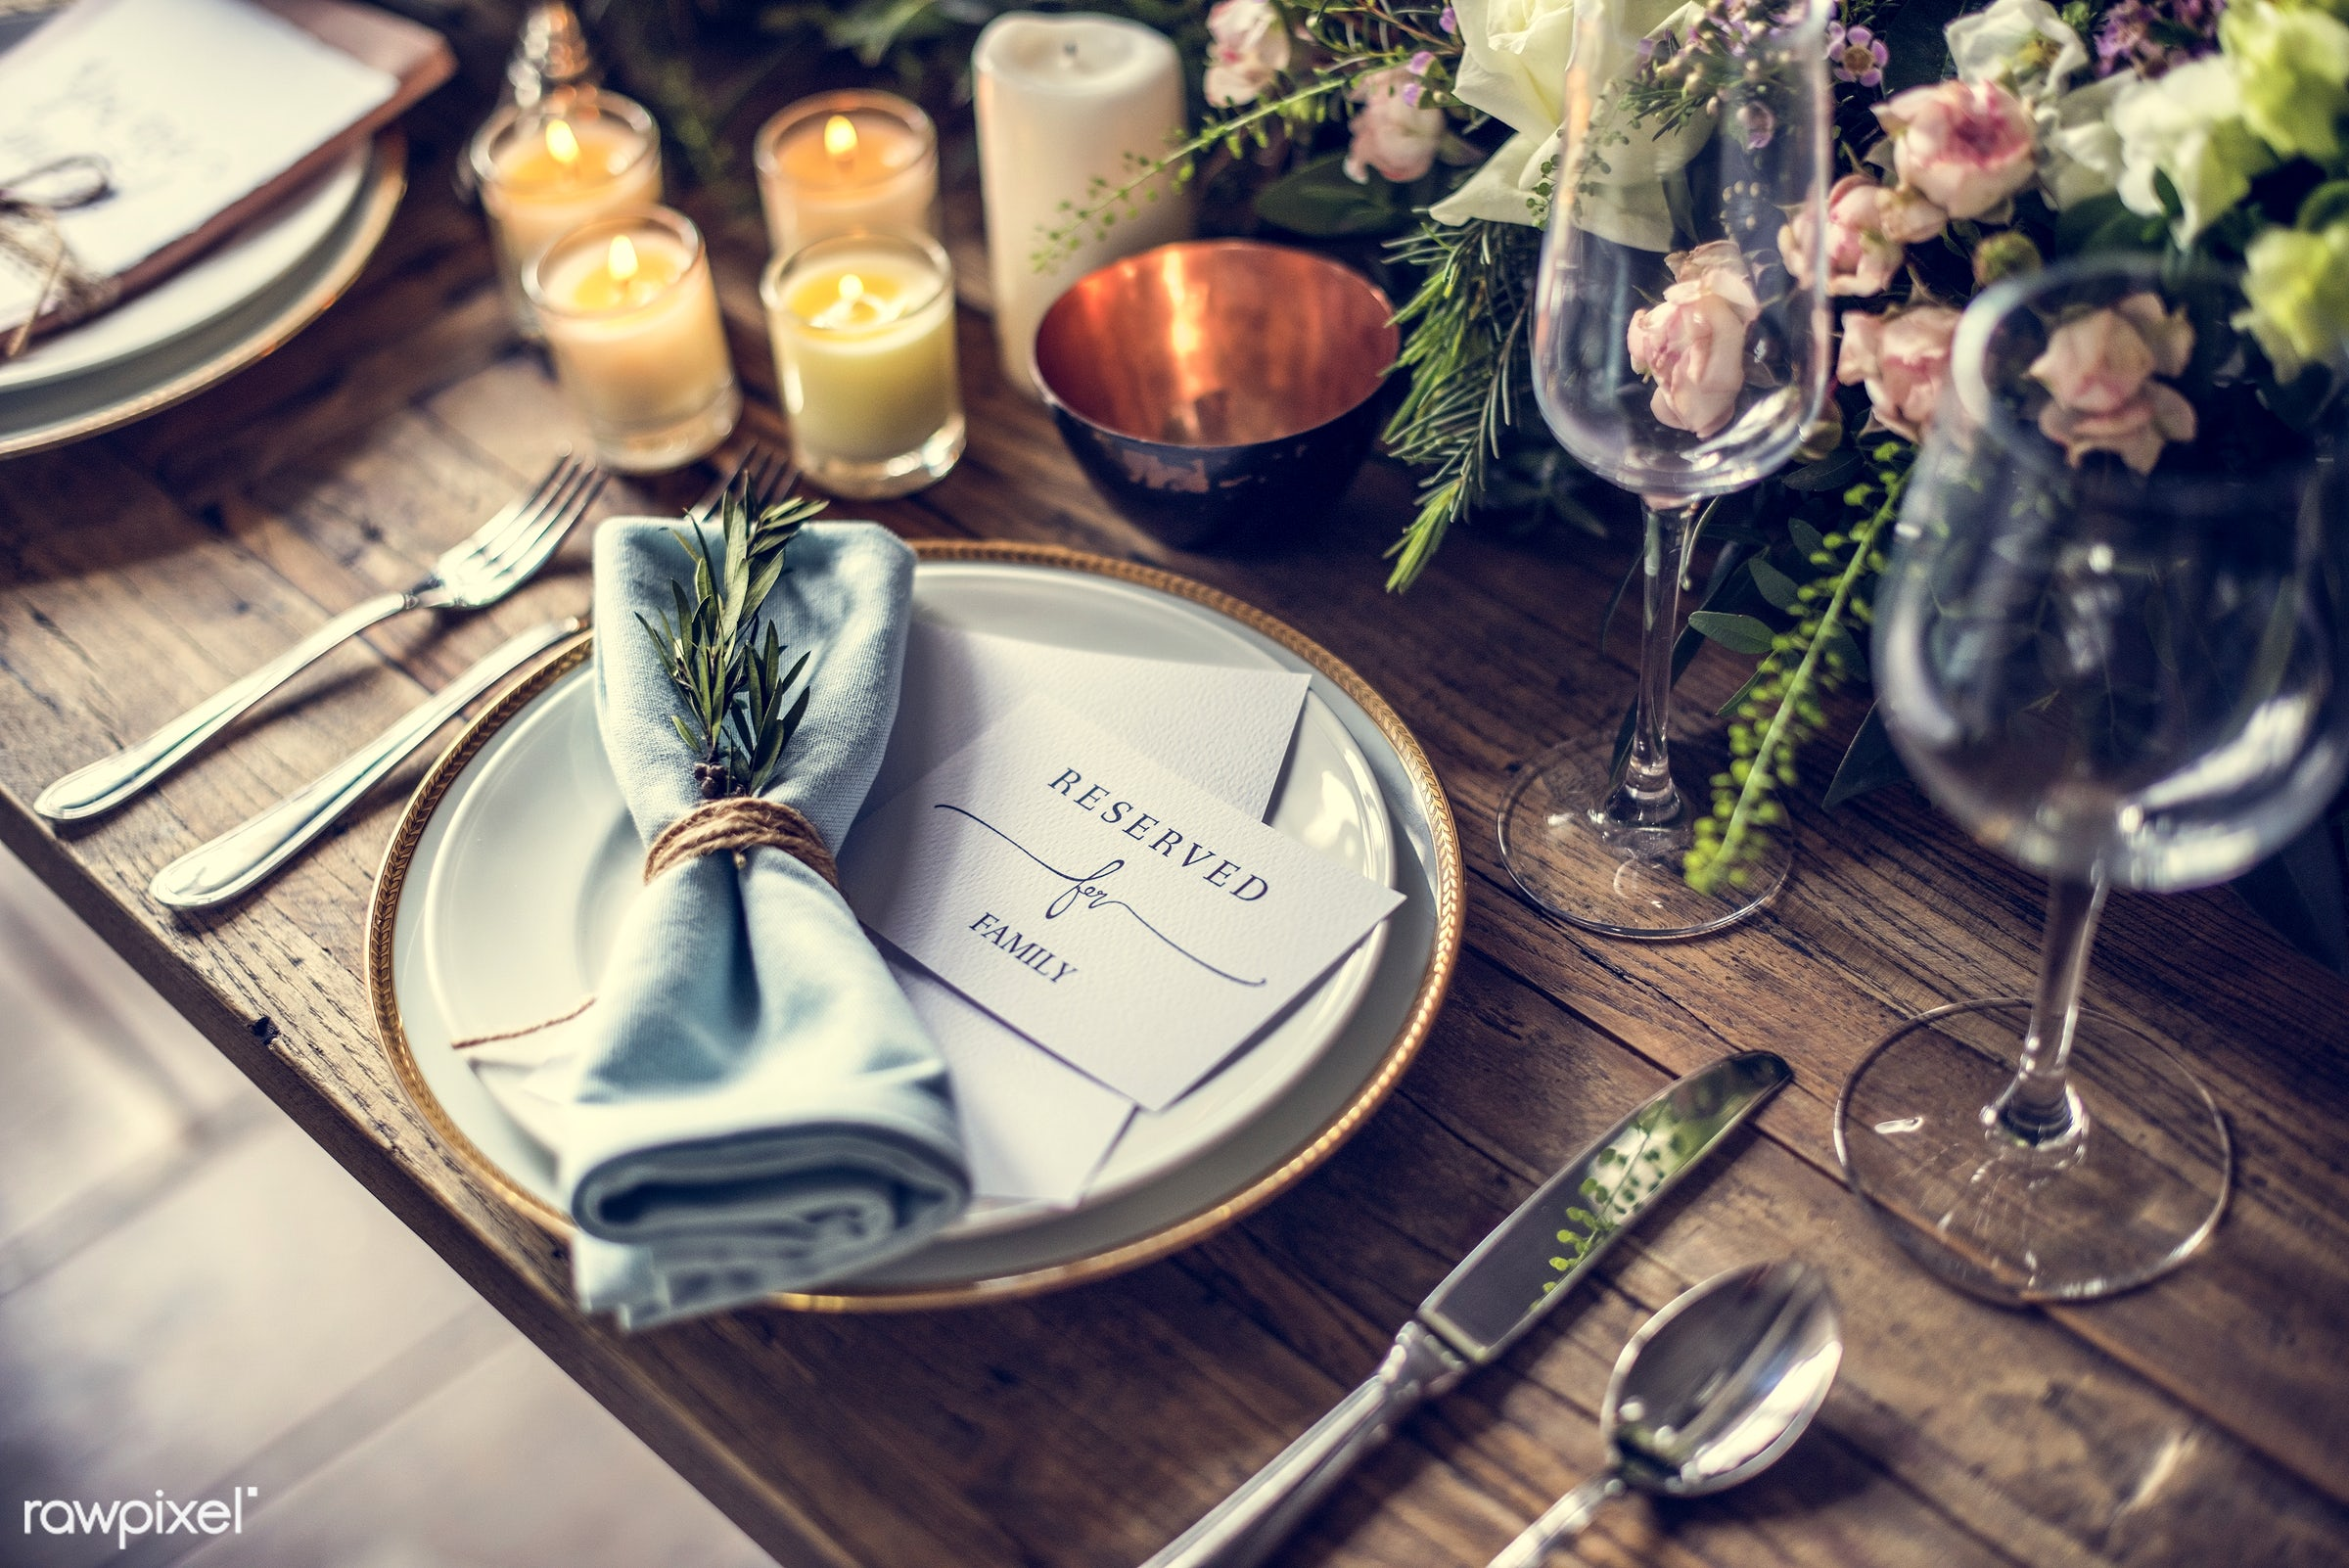 dish, nobody, fancy, for, cutlery, spoon, silverware, party, tablecloth, family, event, candles, banquet, card, lunch,...